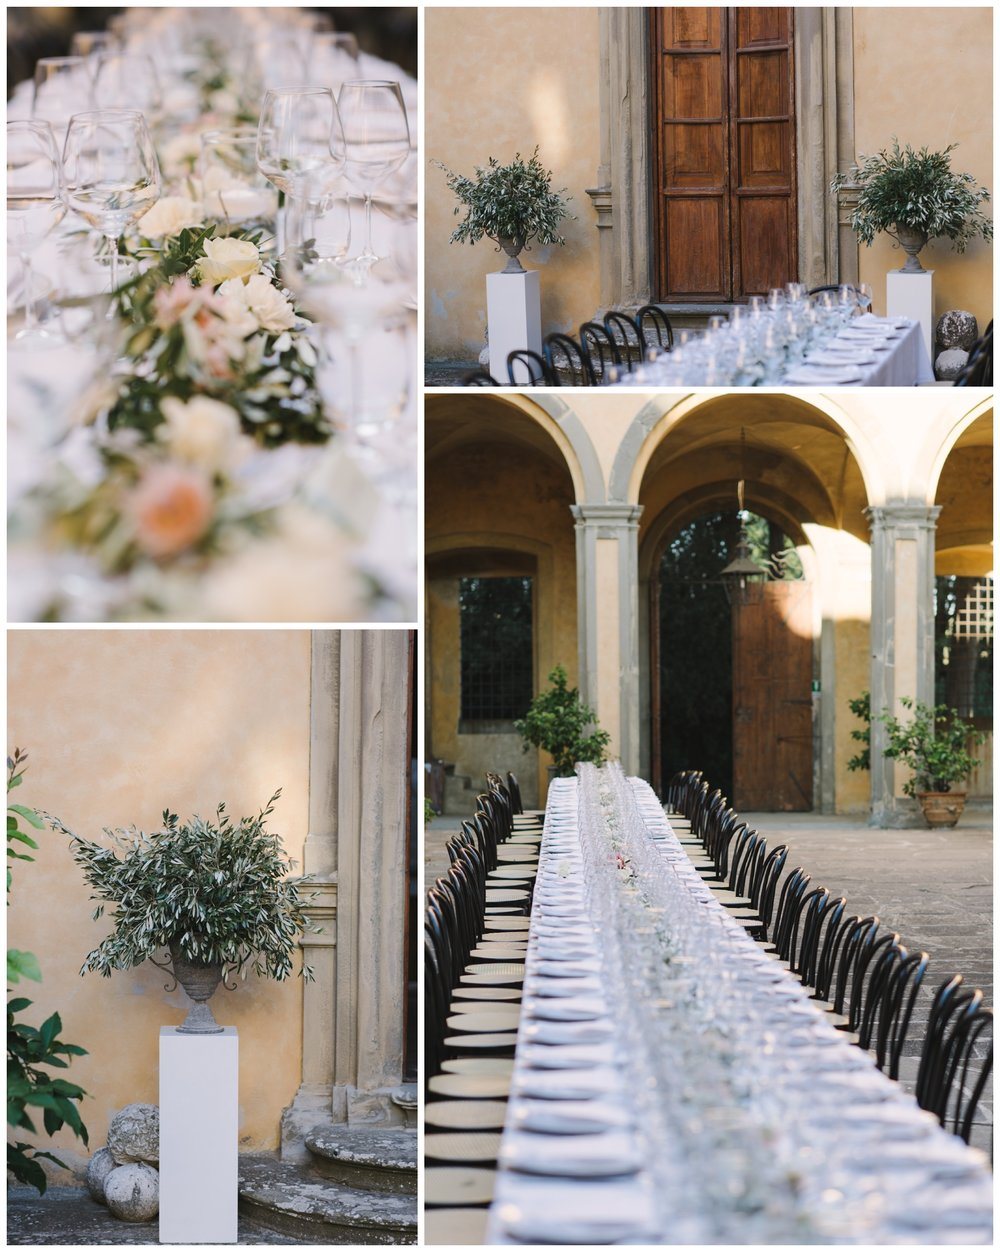 Wedding_Photographer_Tuscany_Italy_0052.jpg